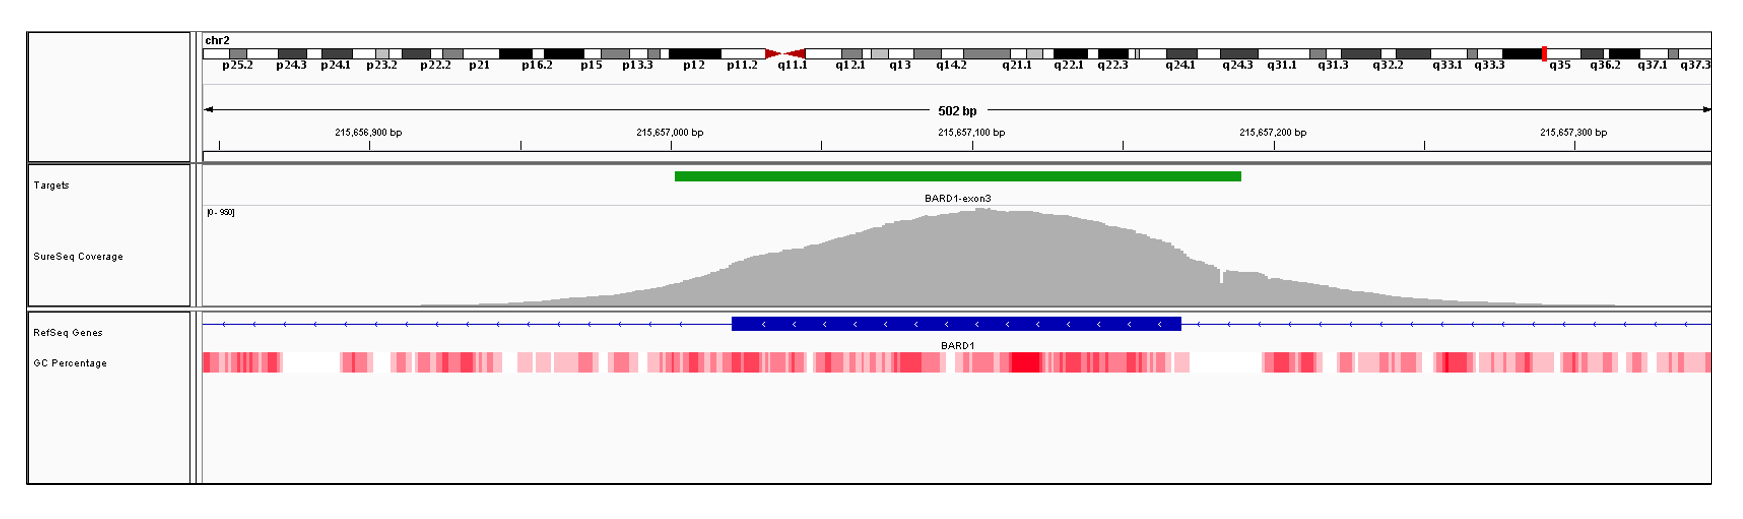 BARD1 Exon 3 (hg19 chr2:215657021-215657169). Depth of coverage per base (grey). Targeted region (green). Gene coding region as defined by RefSeq (blue). GC percentage (red). Image